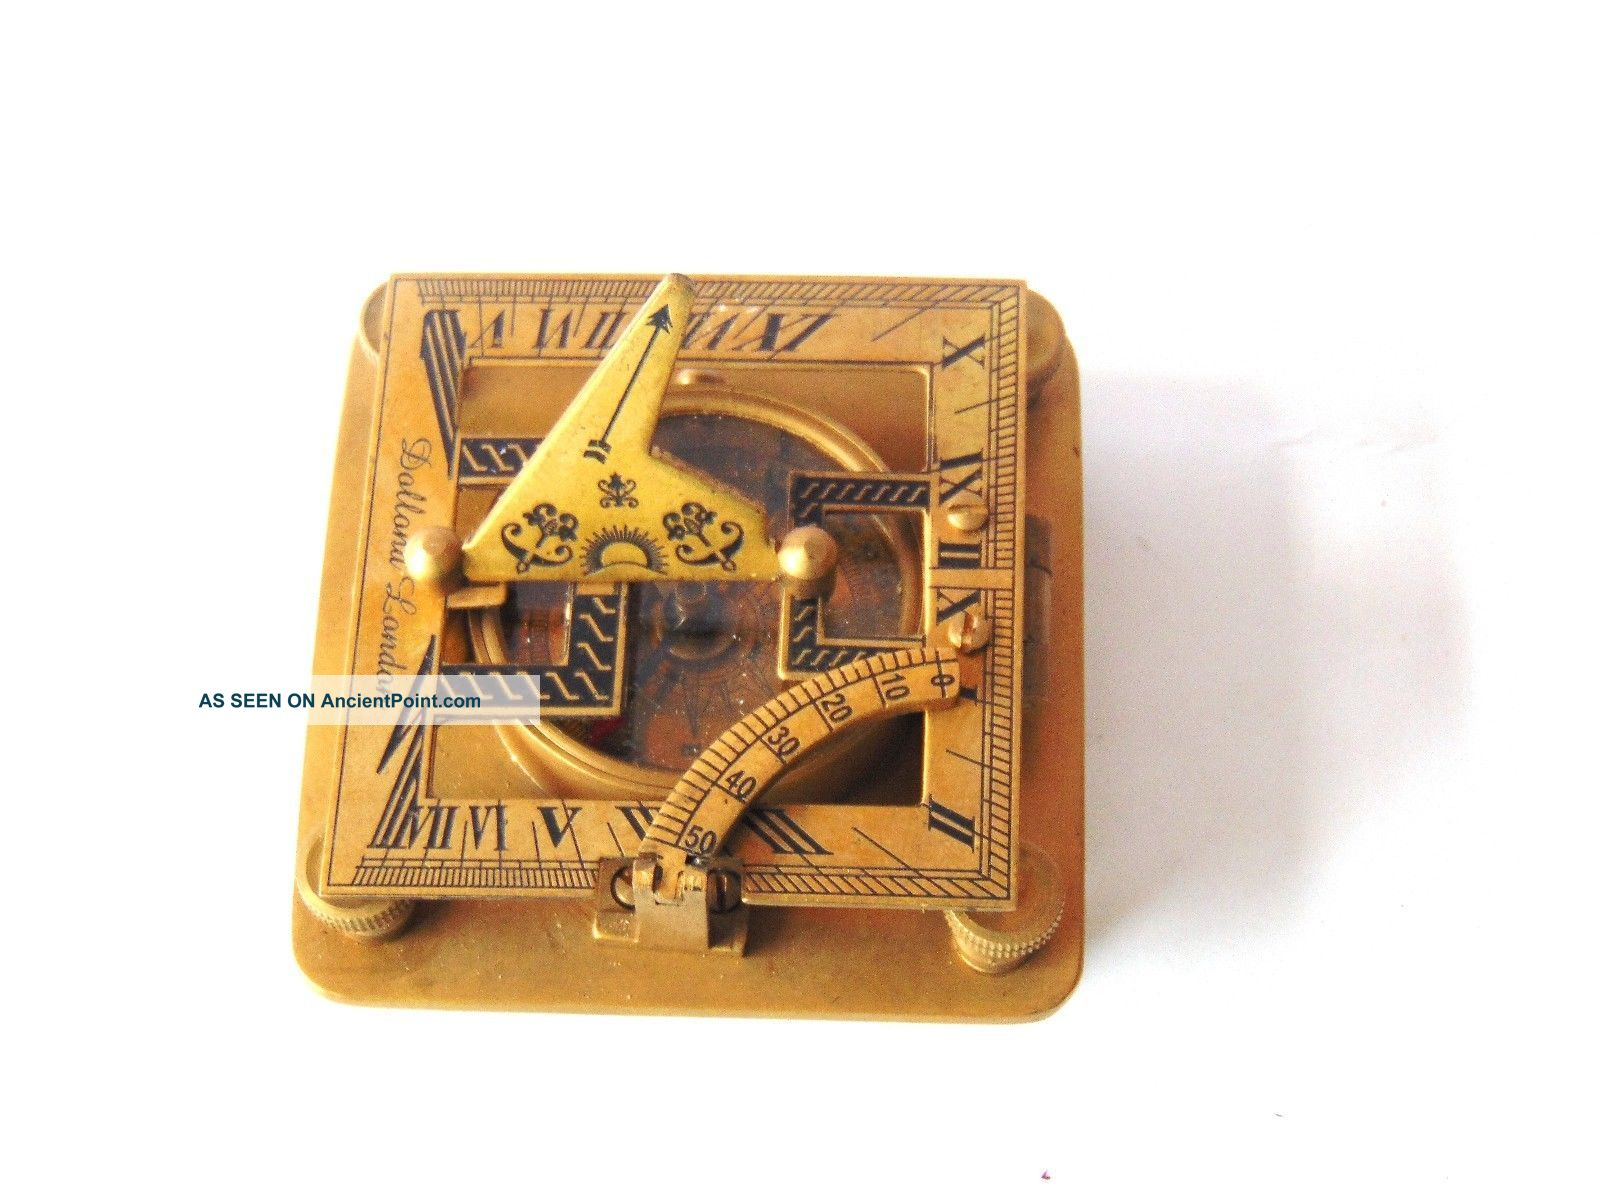 Antique Solid Brass Sundial Compass - Square Shape Sundial Compass - Sun Clock Compasses photo